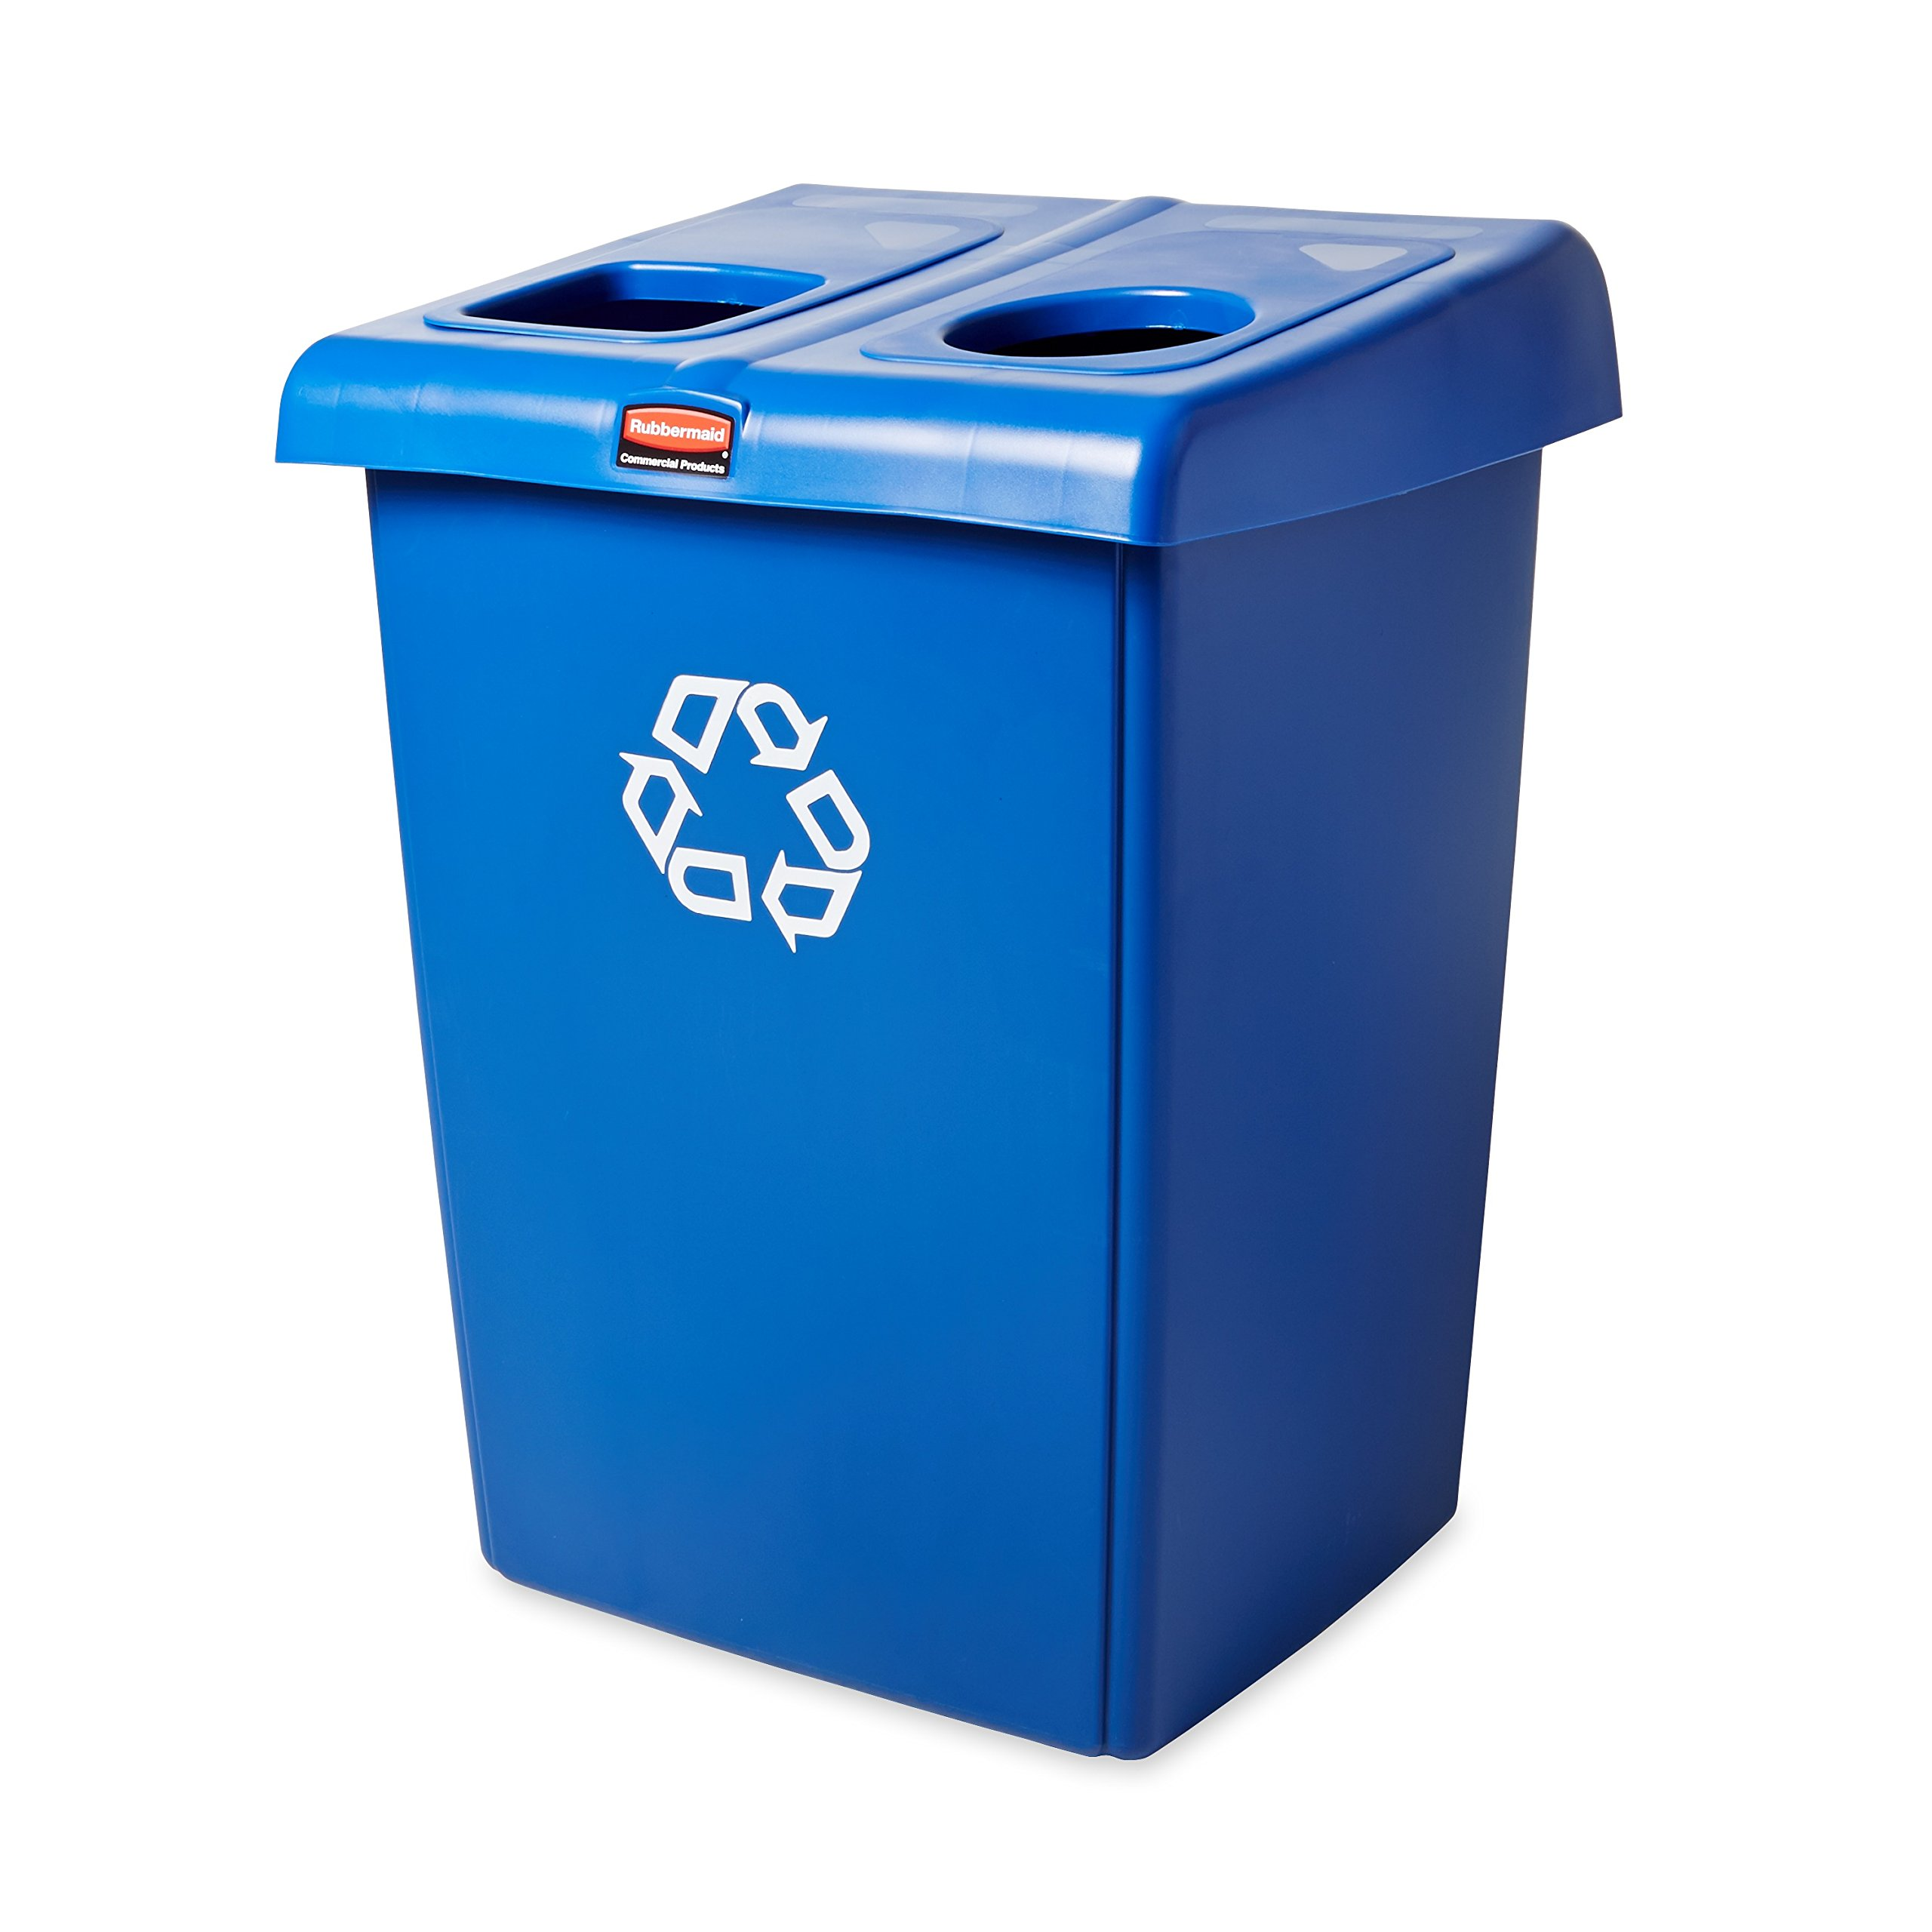 Rubbermaid Commercial 1792339 Glutton Recycling Station, 2-Stream, 46-Gallon, Blue by Rubbermaid Commercial Products (Image #4)